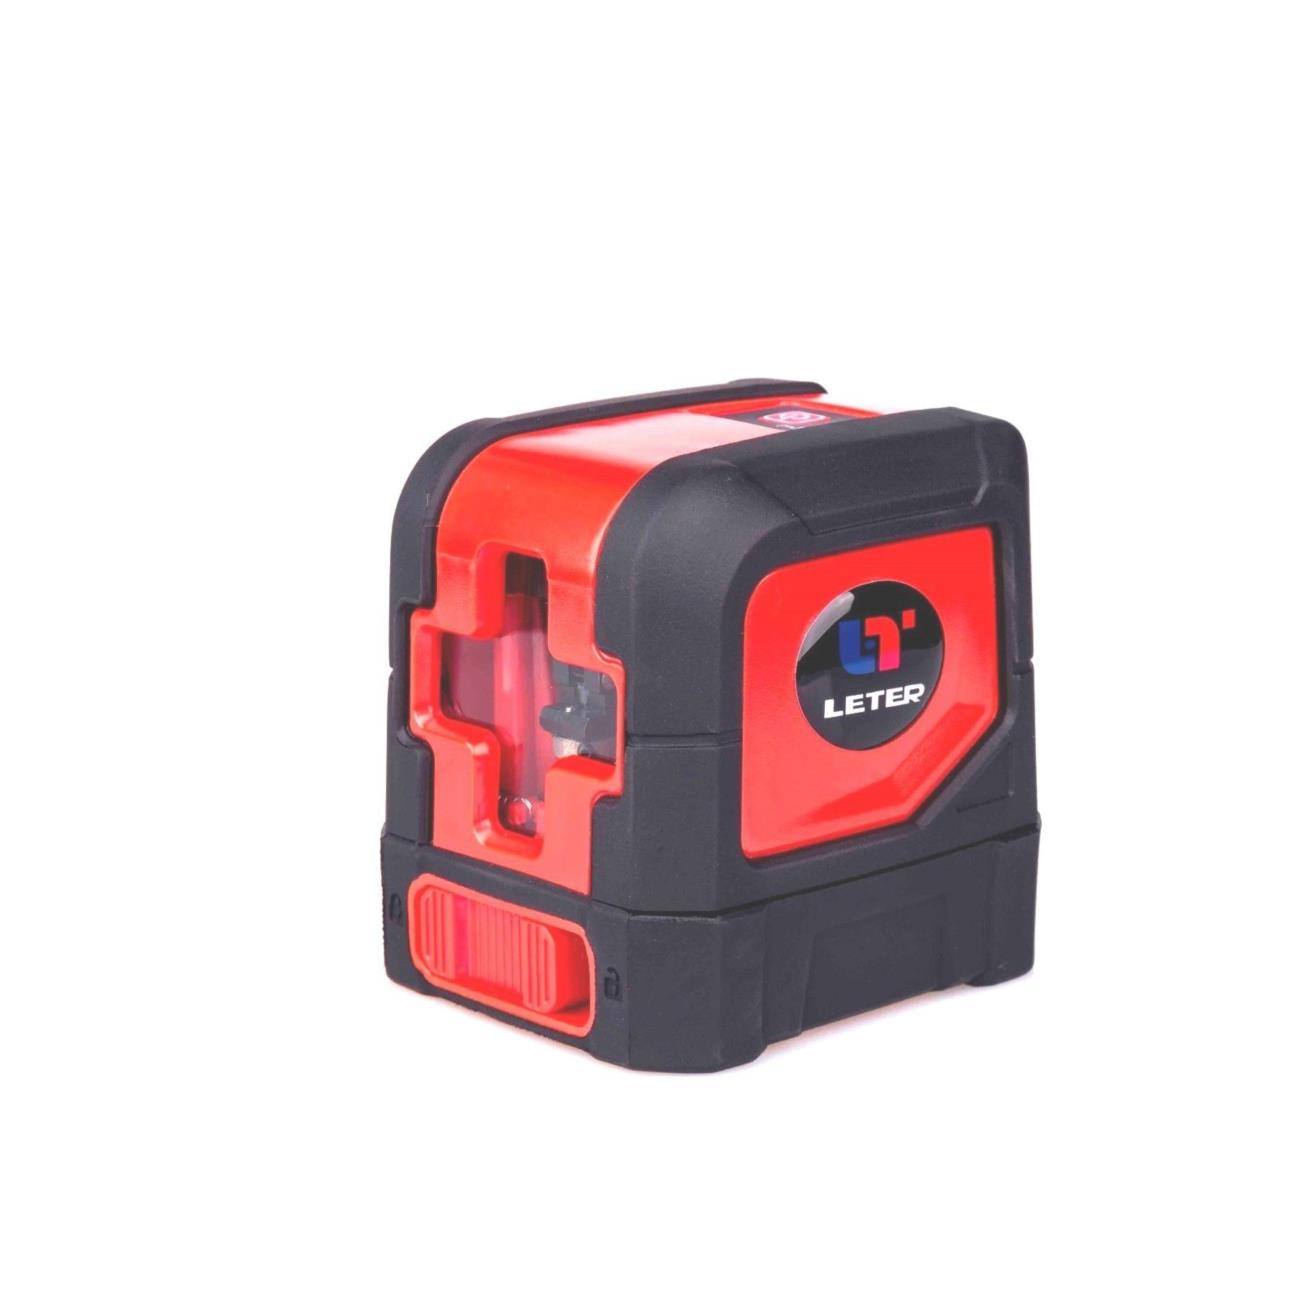 Leter xeast 8line laser level xe 902 360 vertical and horizontal self leveling cross line 3d laser level 4h 4v red beam